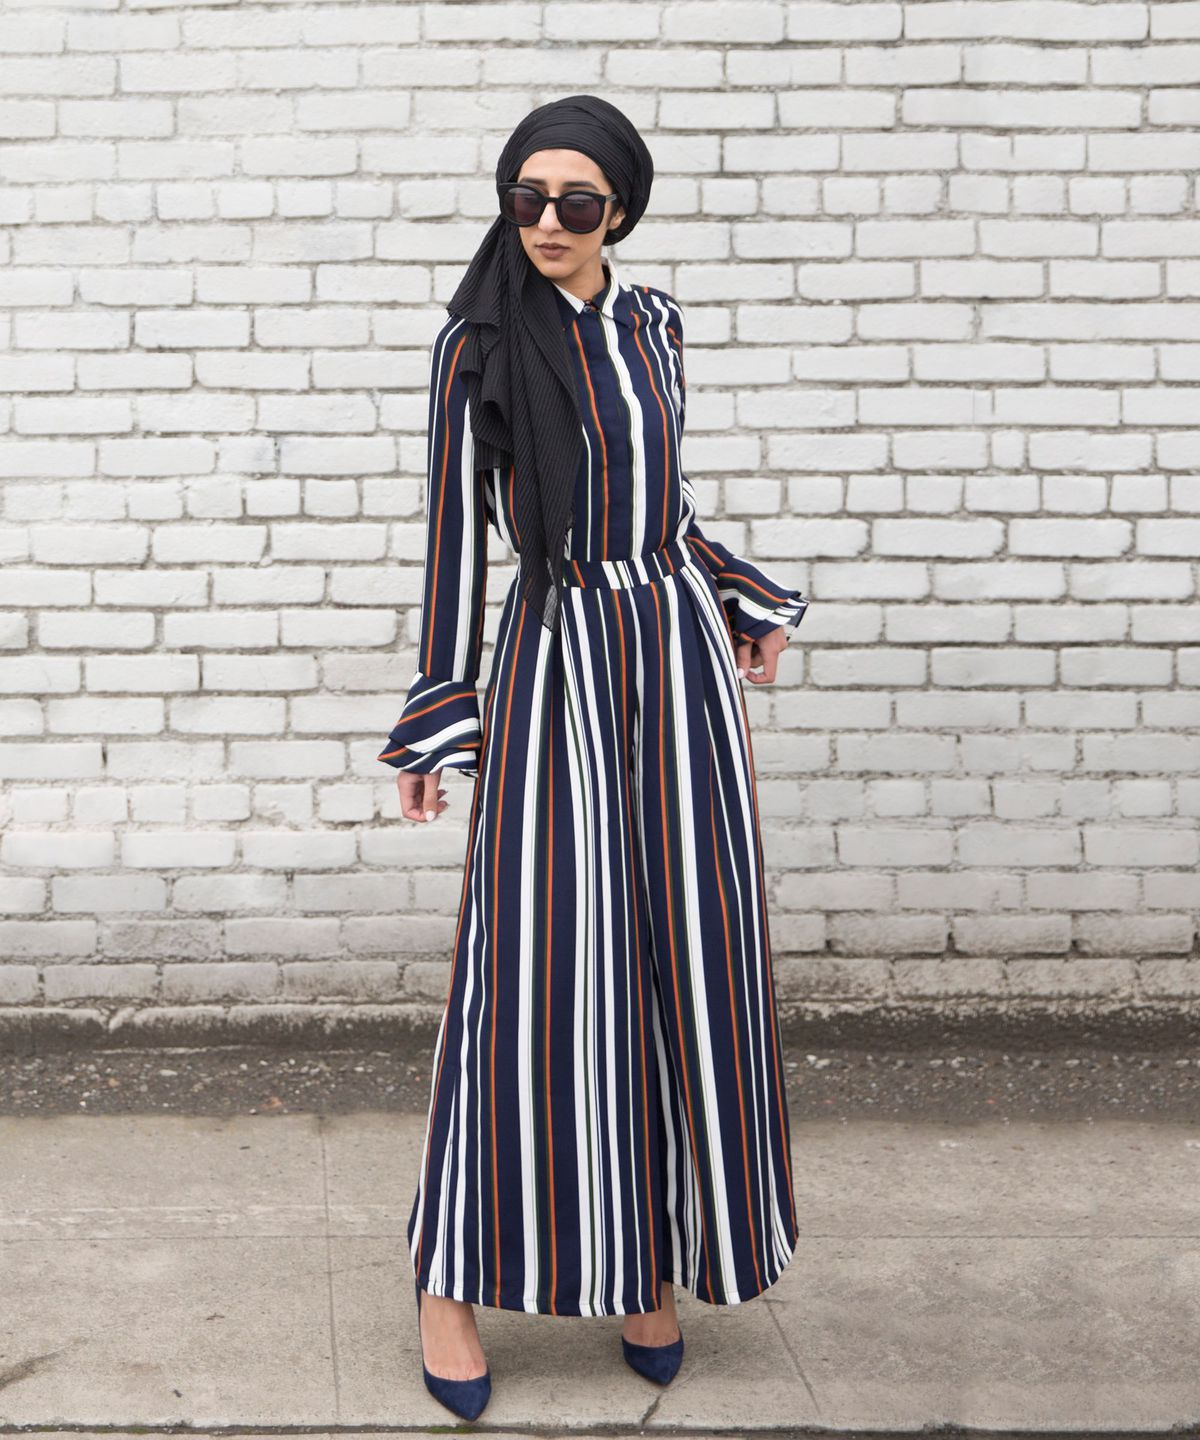 Macys Sell: Macy's Now Sells Hijabs And Modest Clothing